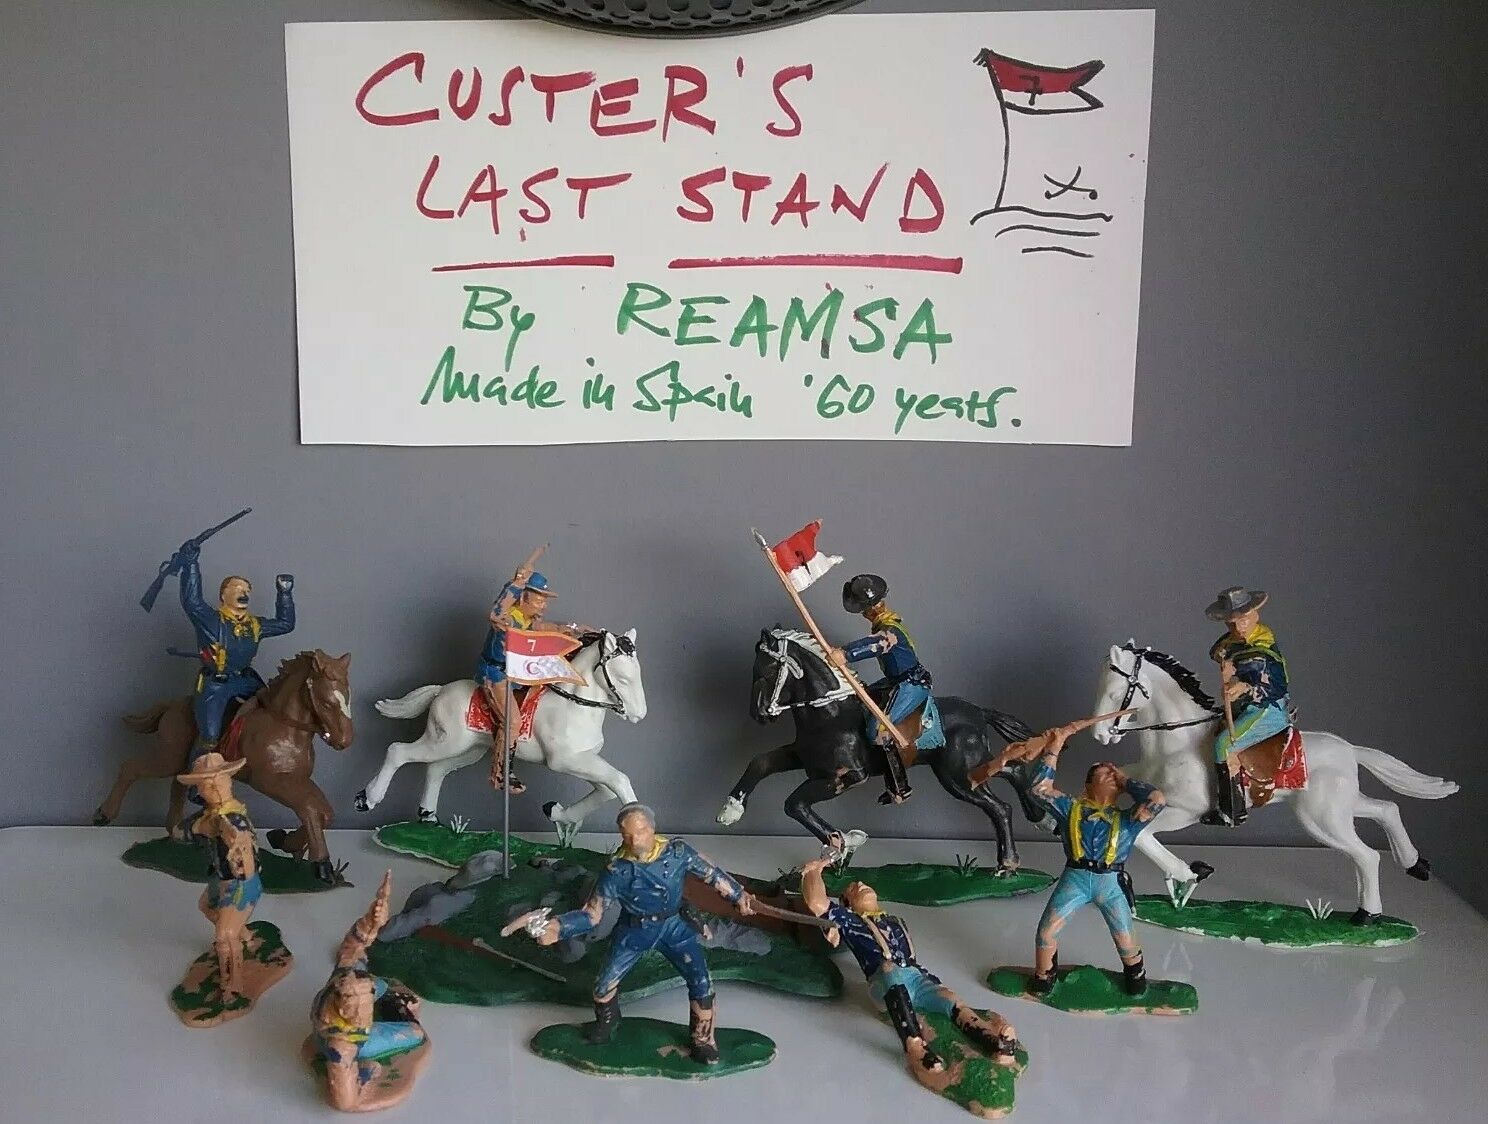 Custer's last stand, US troopers - Toy soldiers by Reamsa in Spain 1960's years.